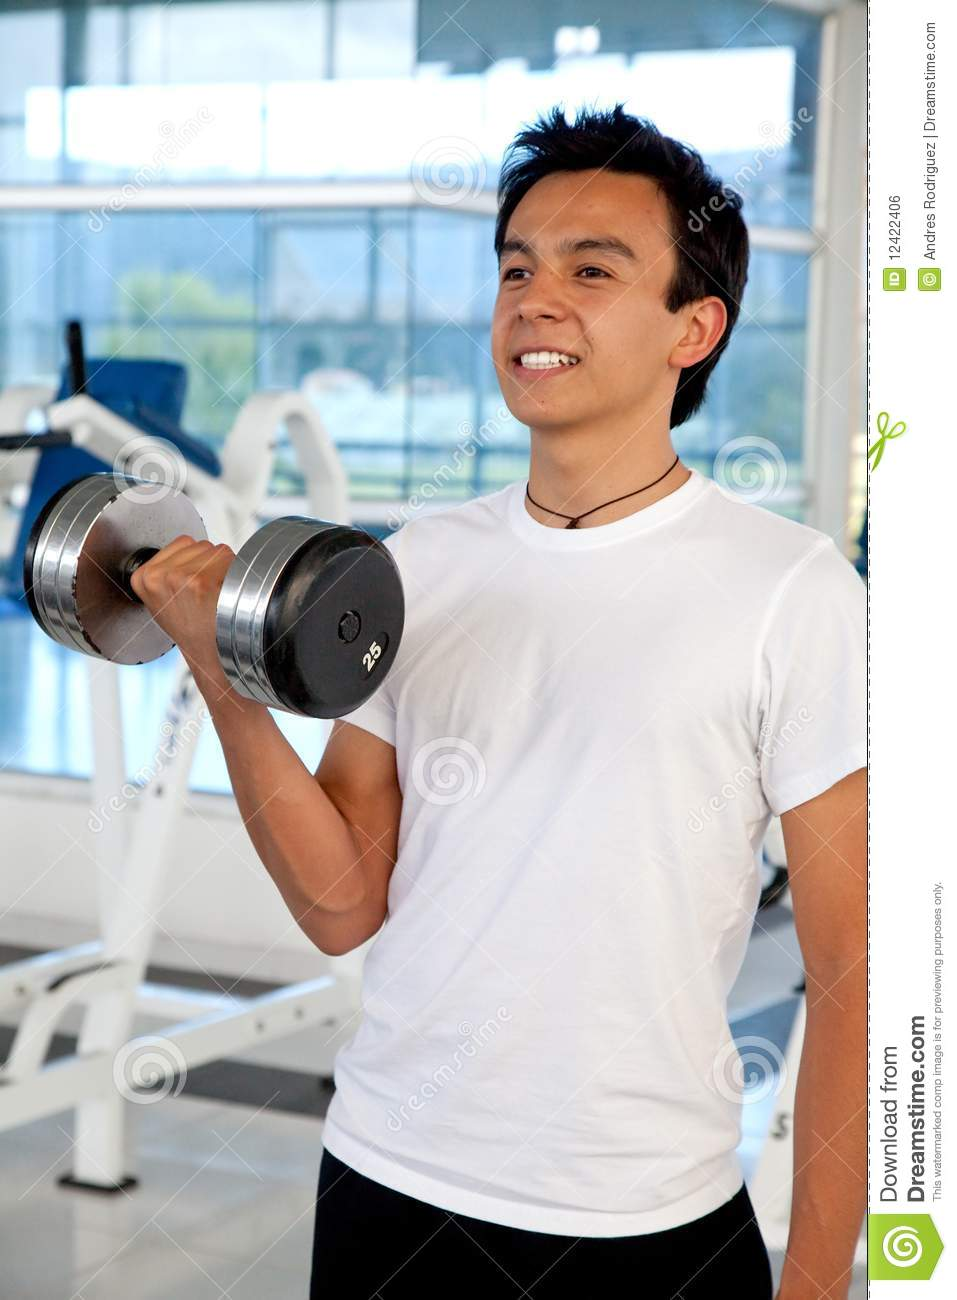 Man Lifting Weights Royalty Free Stock Image - Image: 12422406